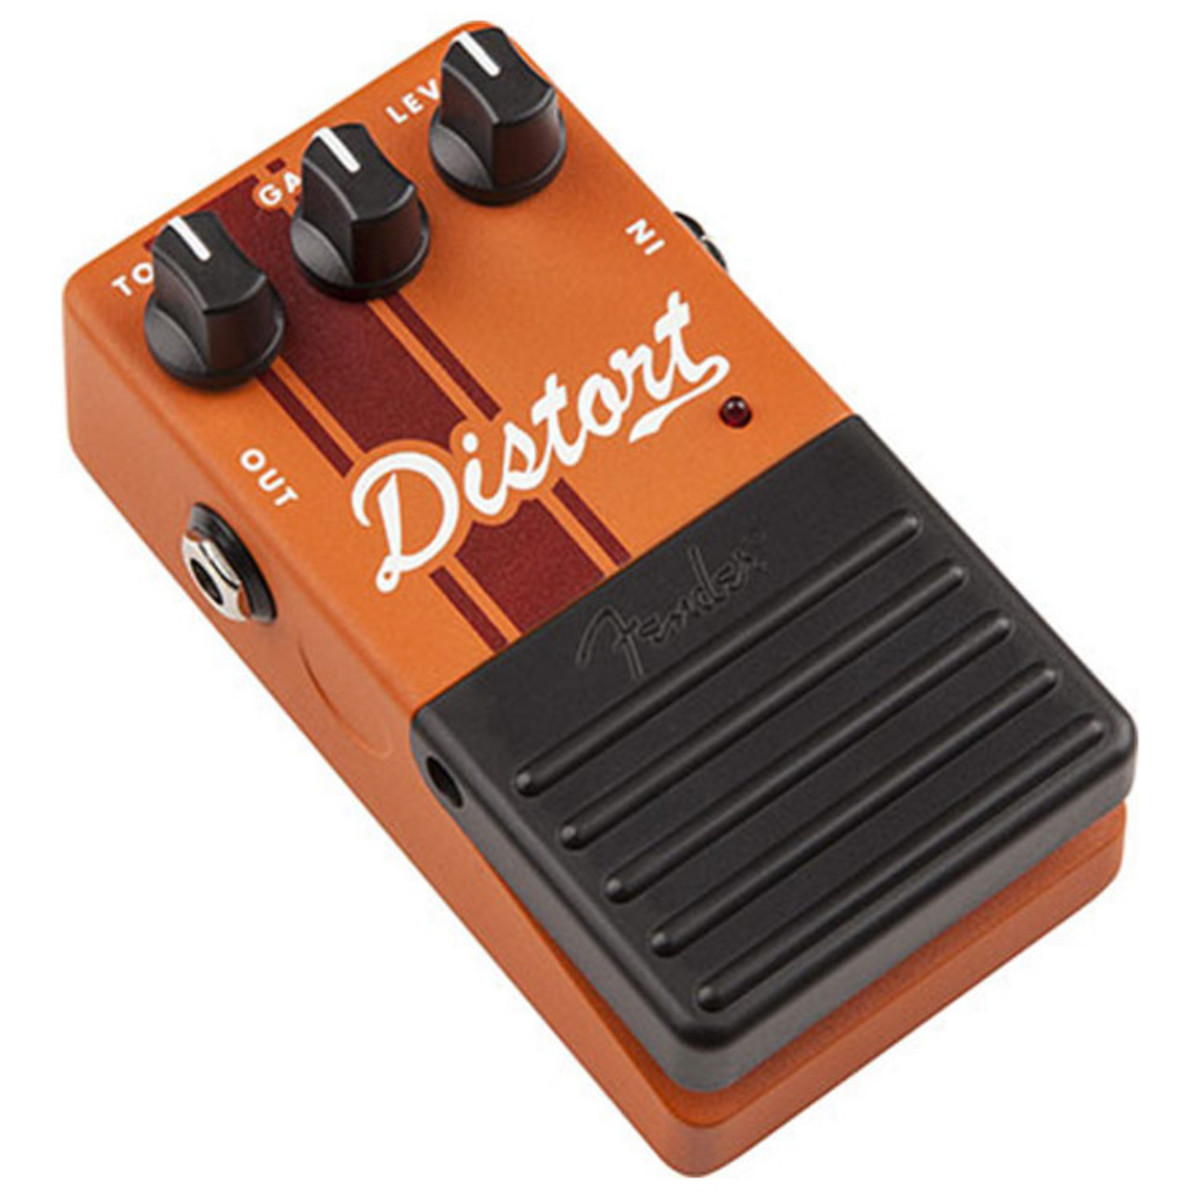 Fender Distortion Guitar Effects Pedal at Gear4music.com